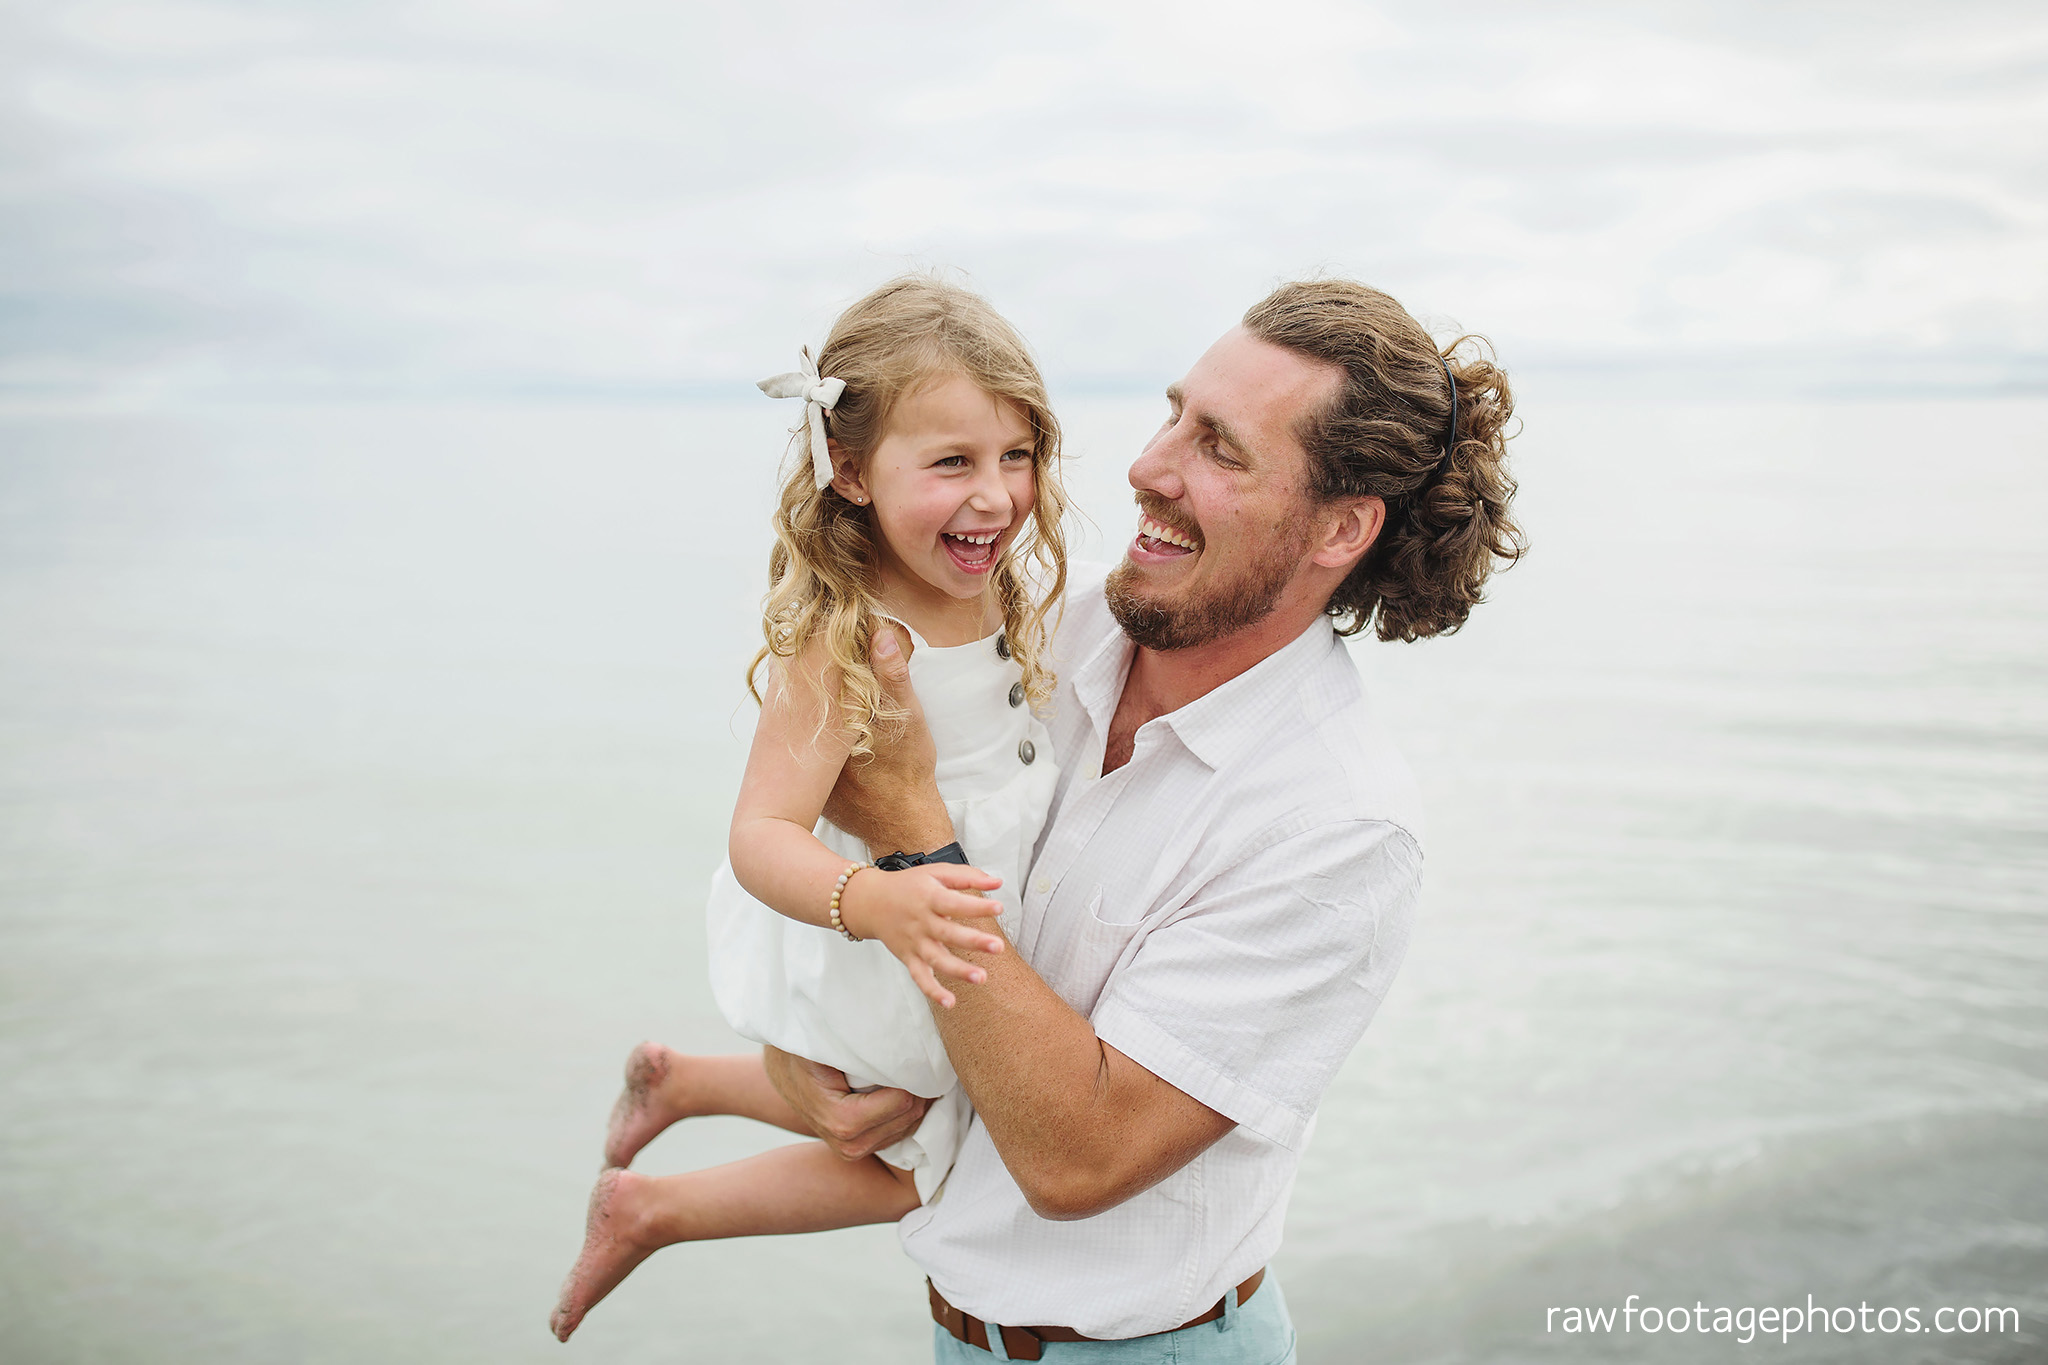 london_ontario_family_photographer-beach_minis-port_stanley_beach-raw_footage_photography052.jpg